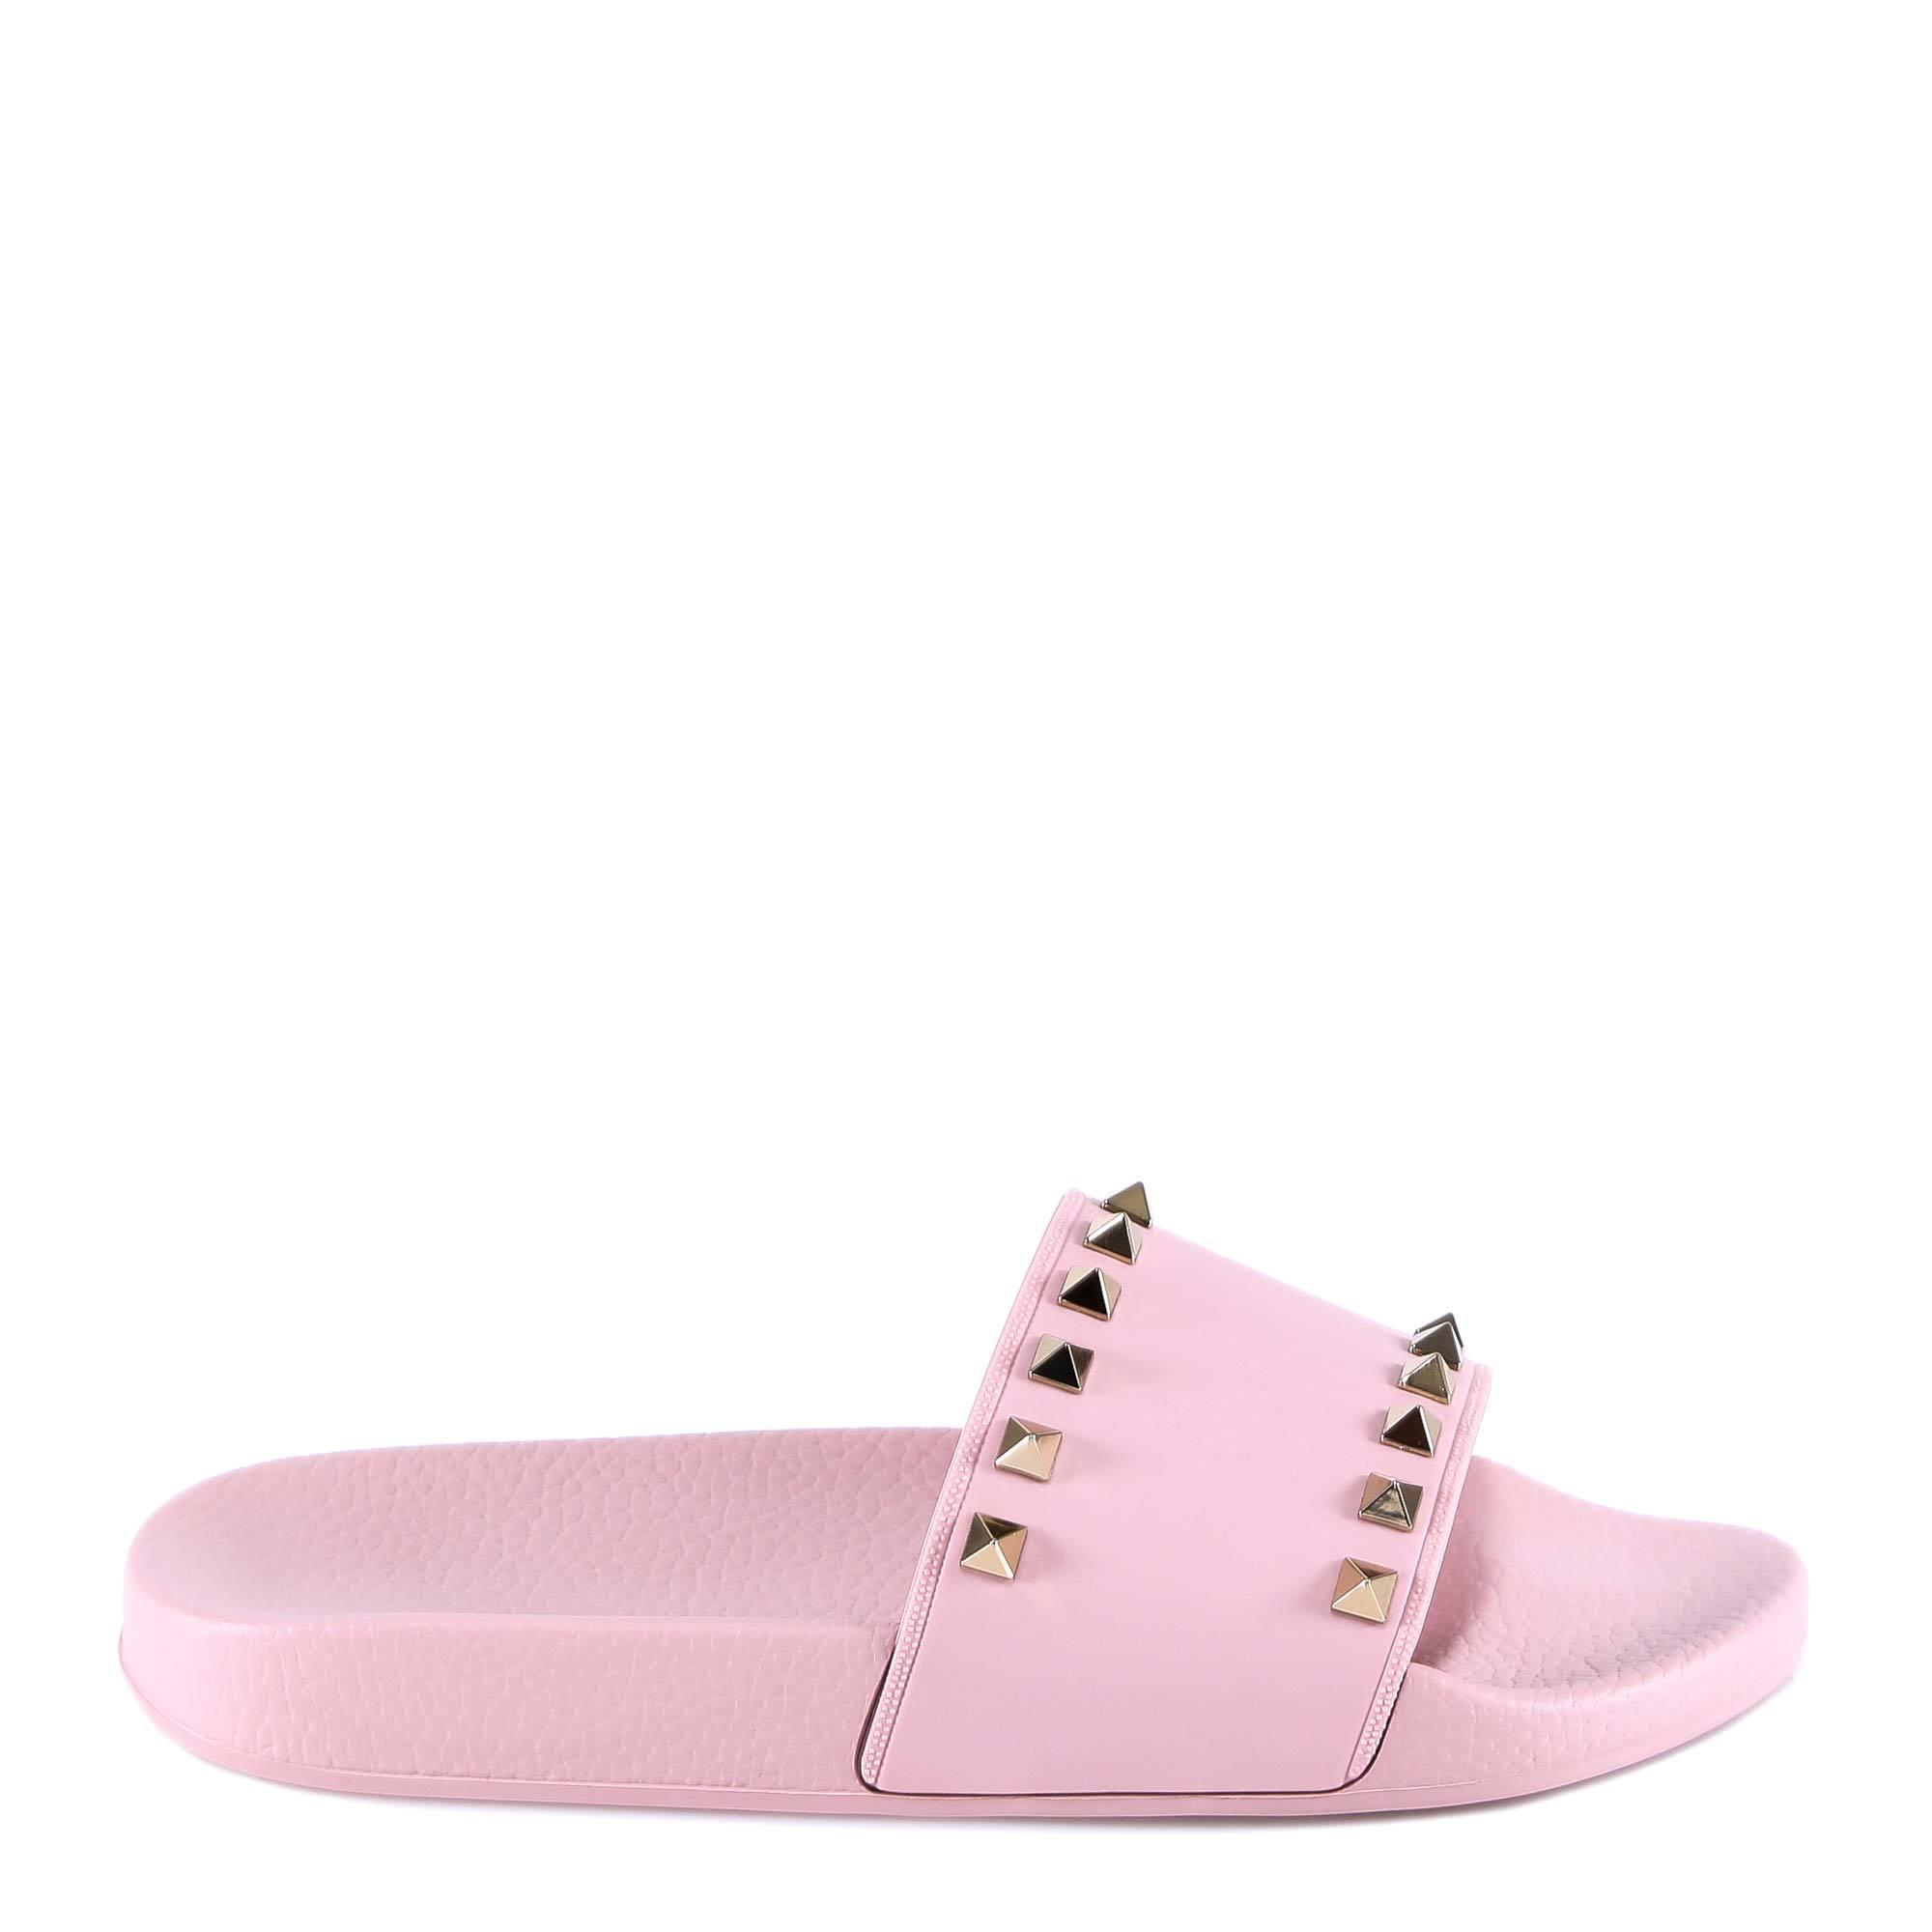 cd157dde99fe Valentino Rockstud Rubber Slides - Save 53% - Lyst